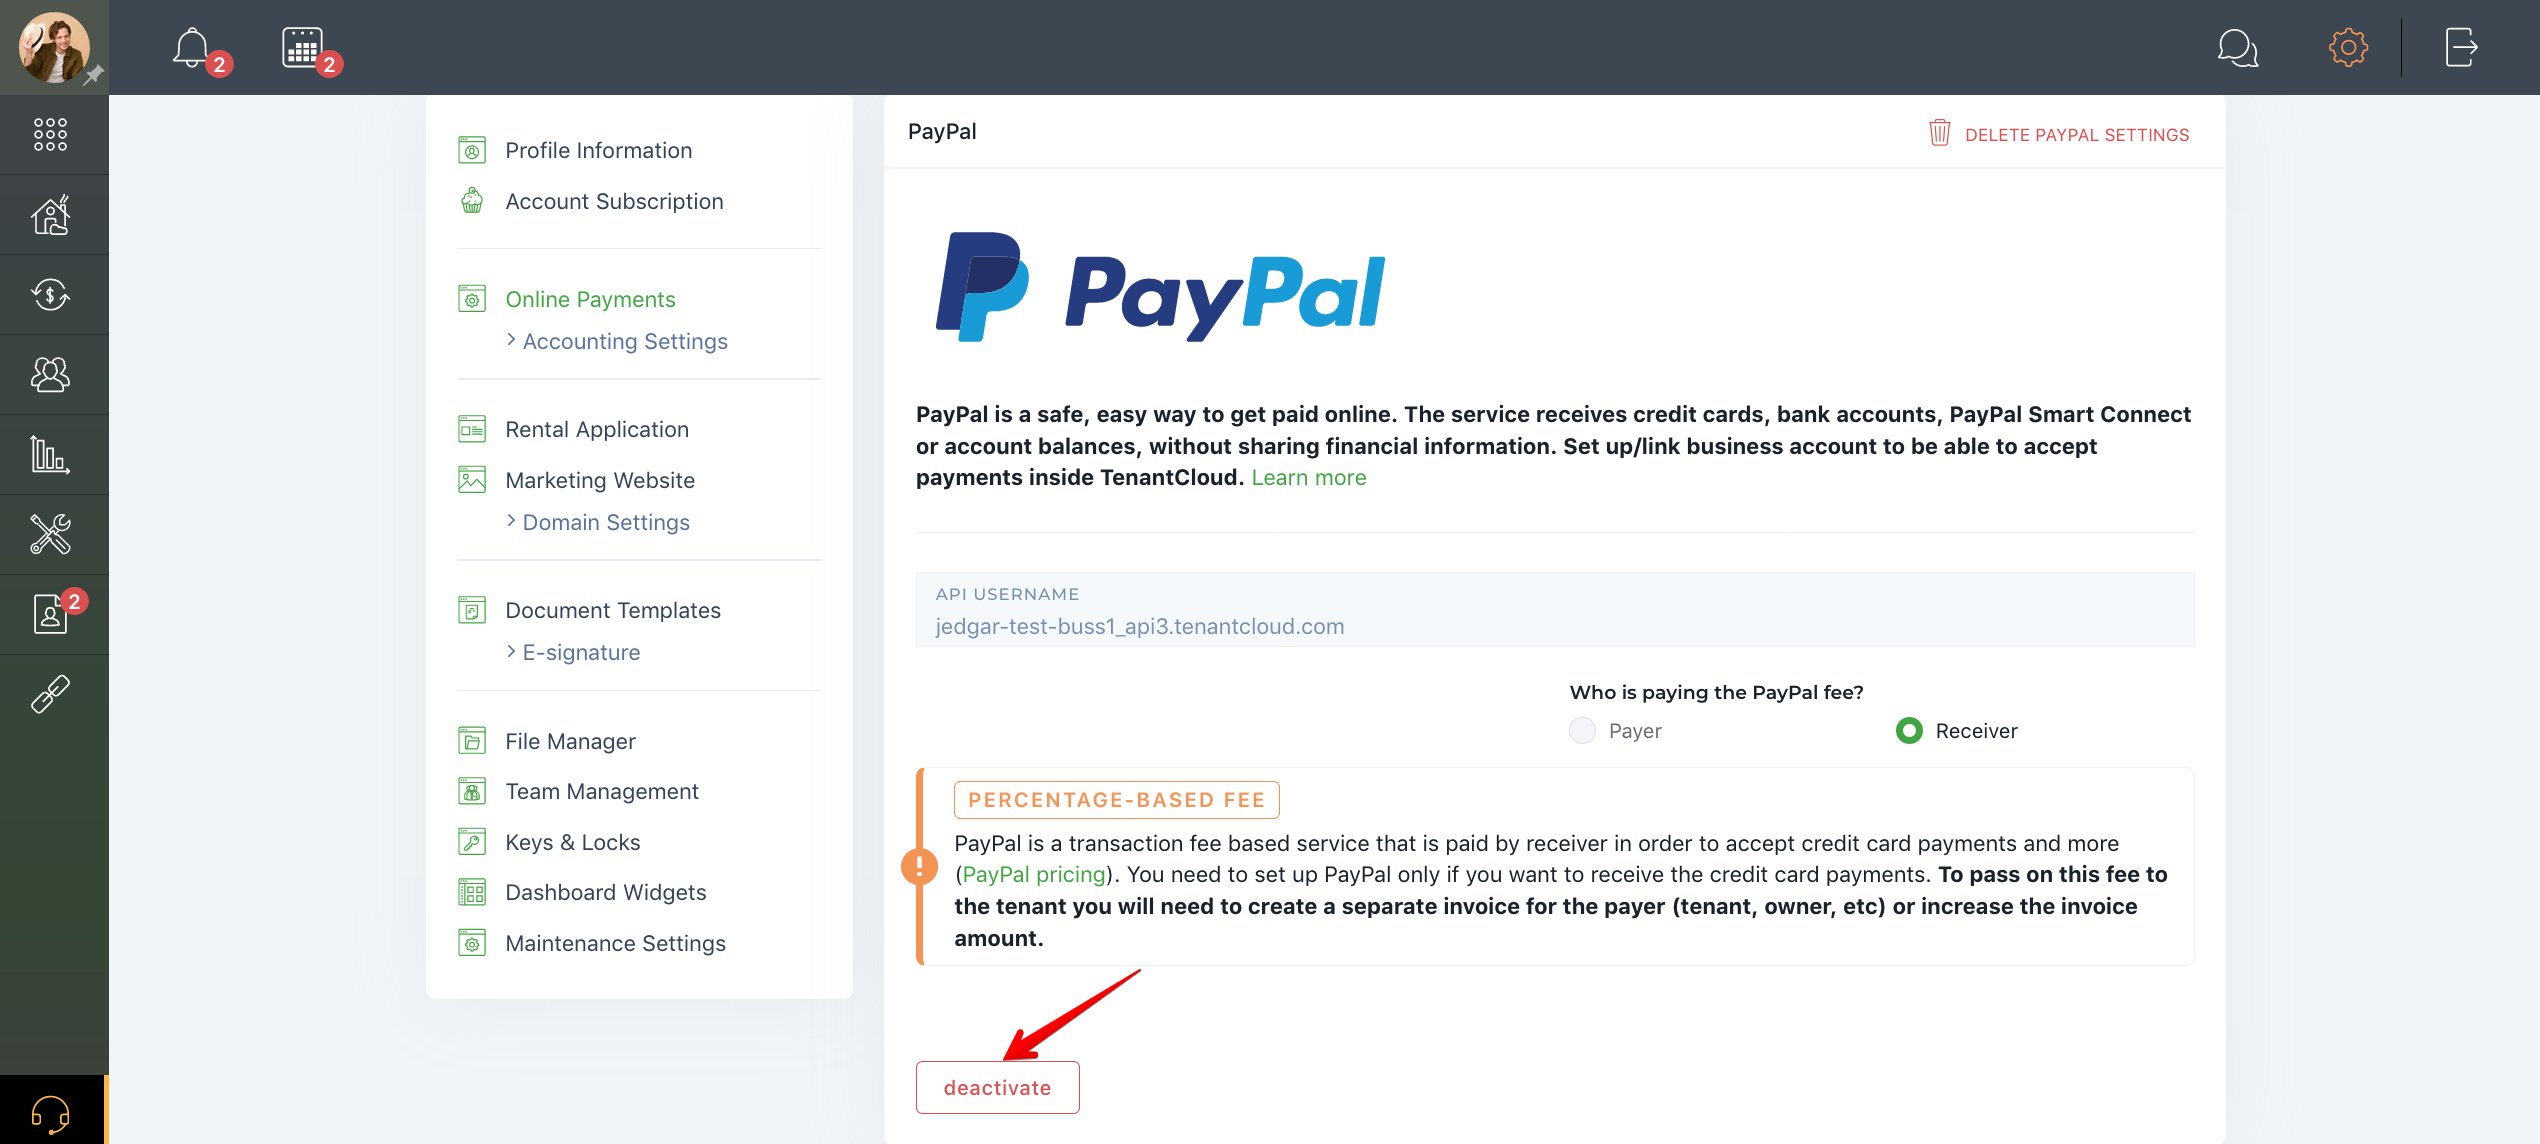 How to deactivate my PayPal account?